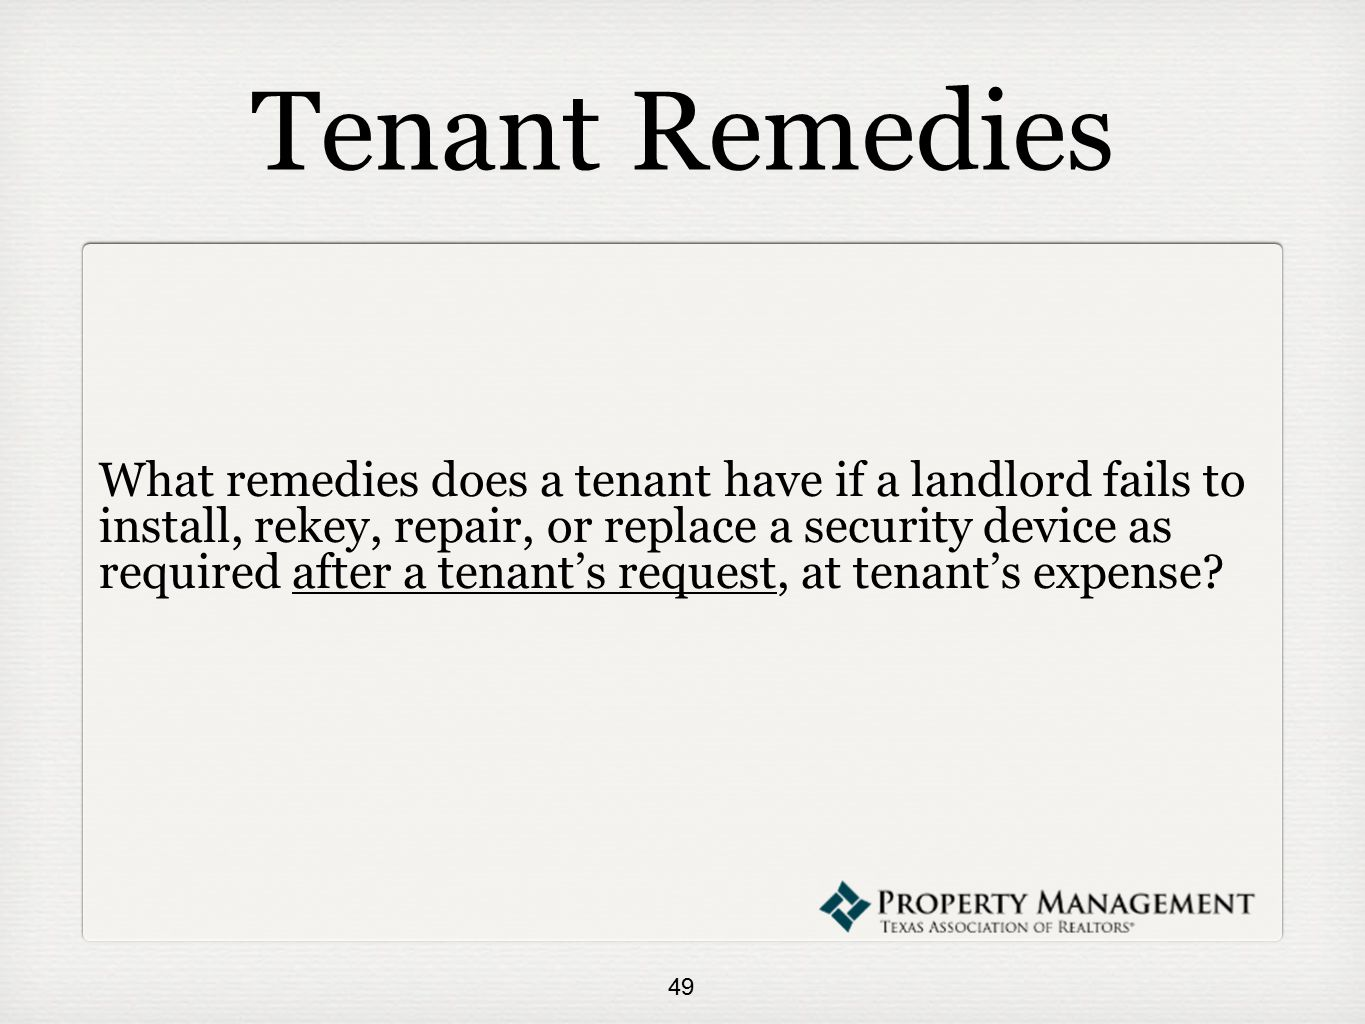 Tenant Remedies What remedies does a tenant have if a landlord fails to install, rekey, repair, or replace a security device as required after a tenant's request, at tenant's expense.